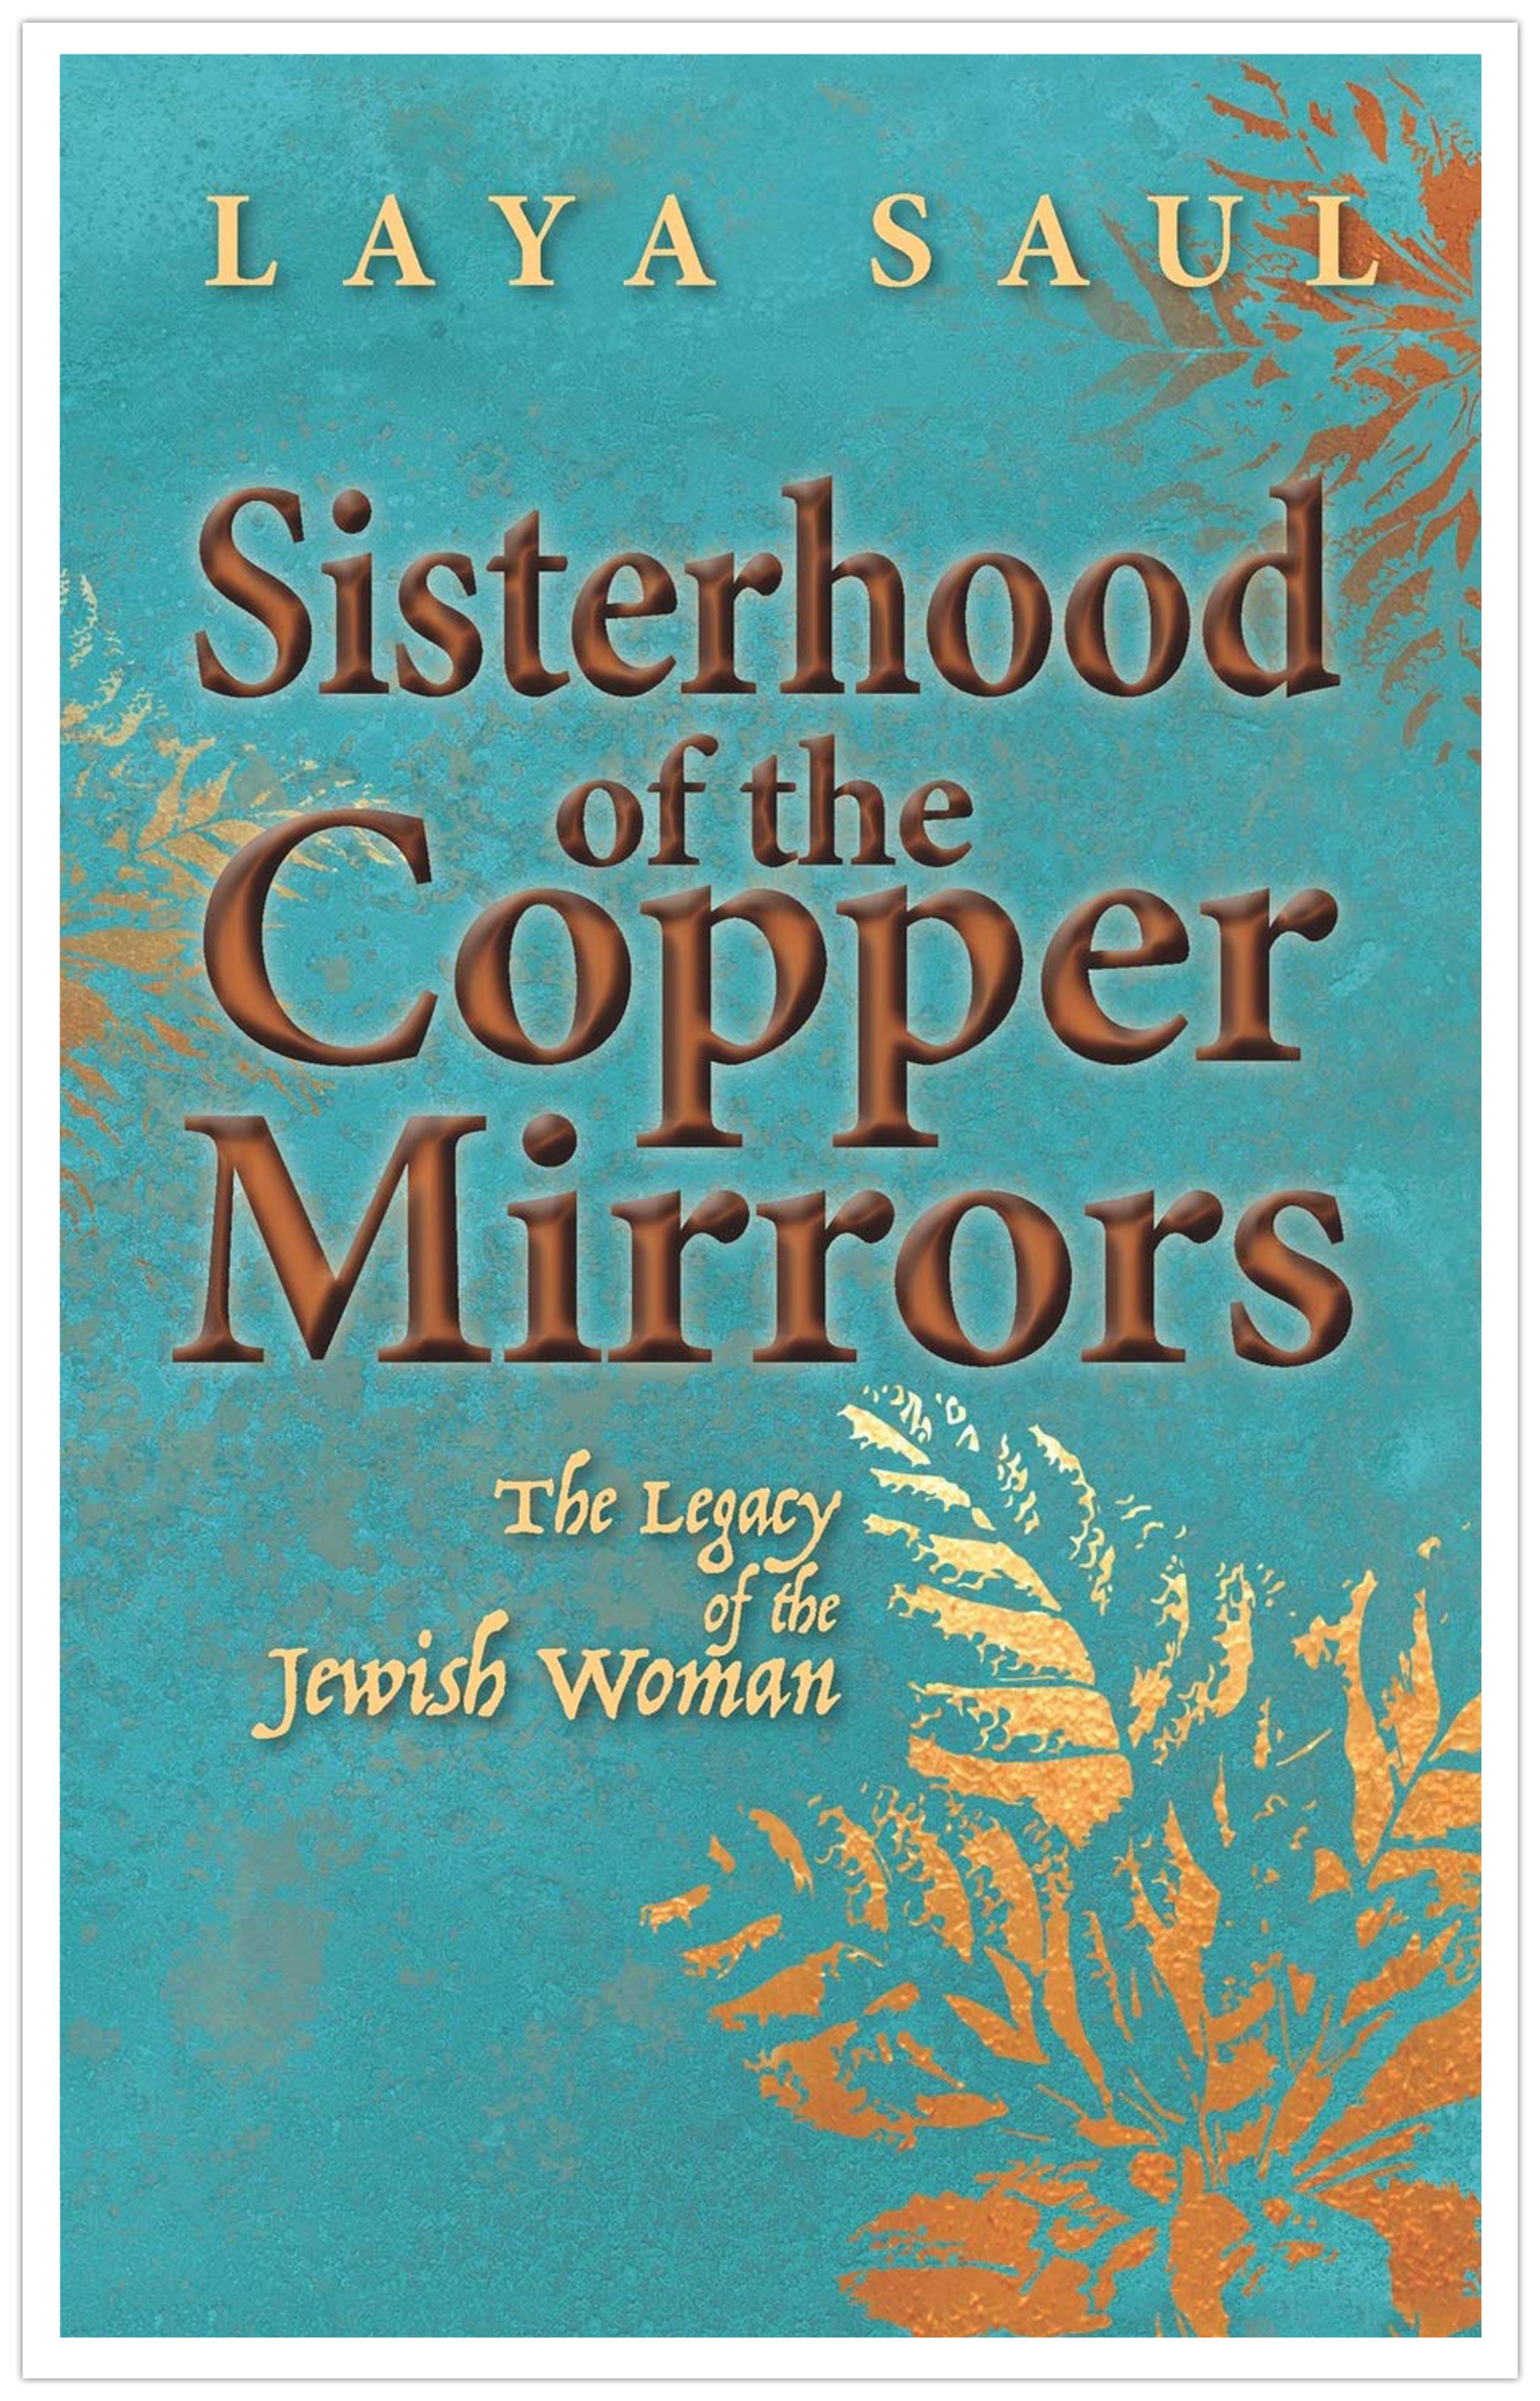 Sisterhood of the Copper Mirrors: Legacy of the Jewish Woman